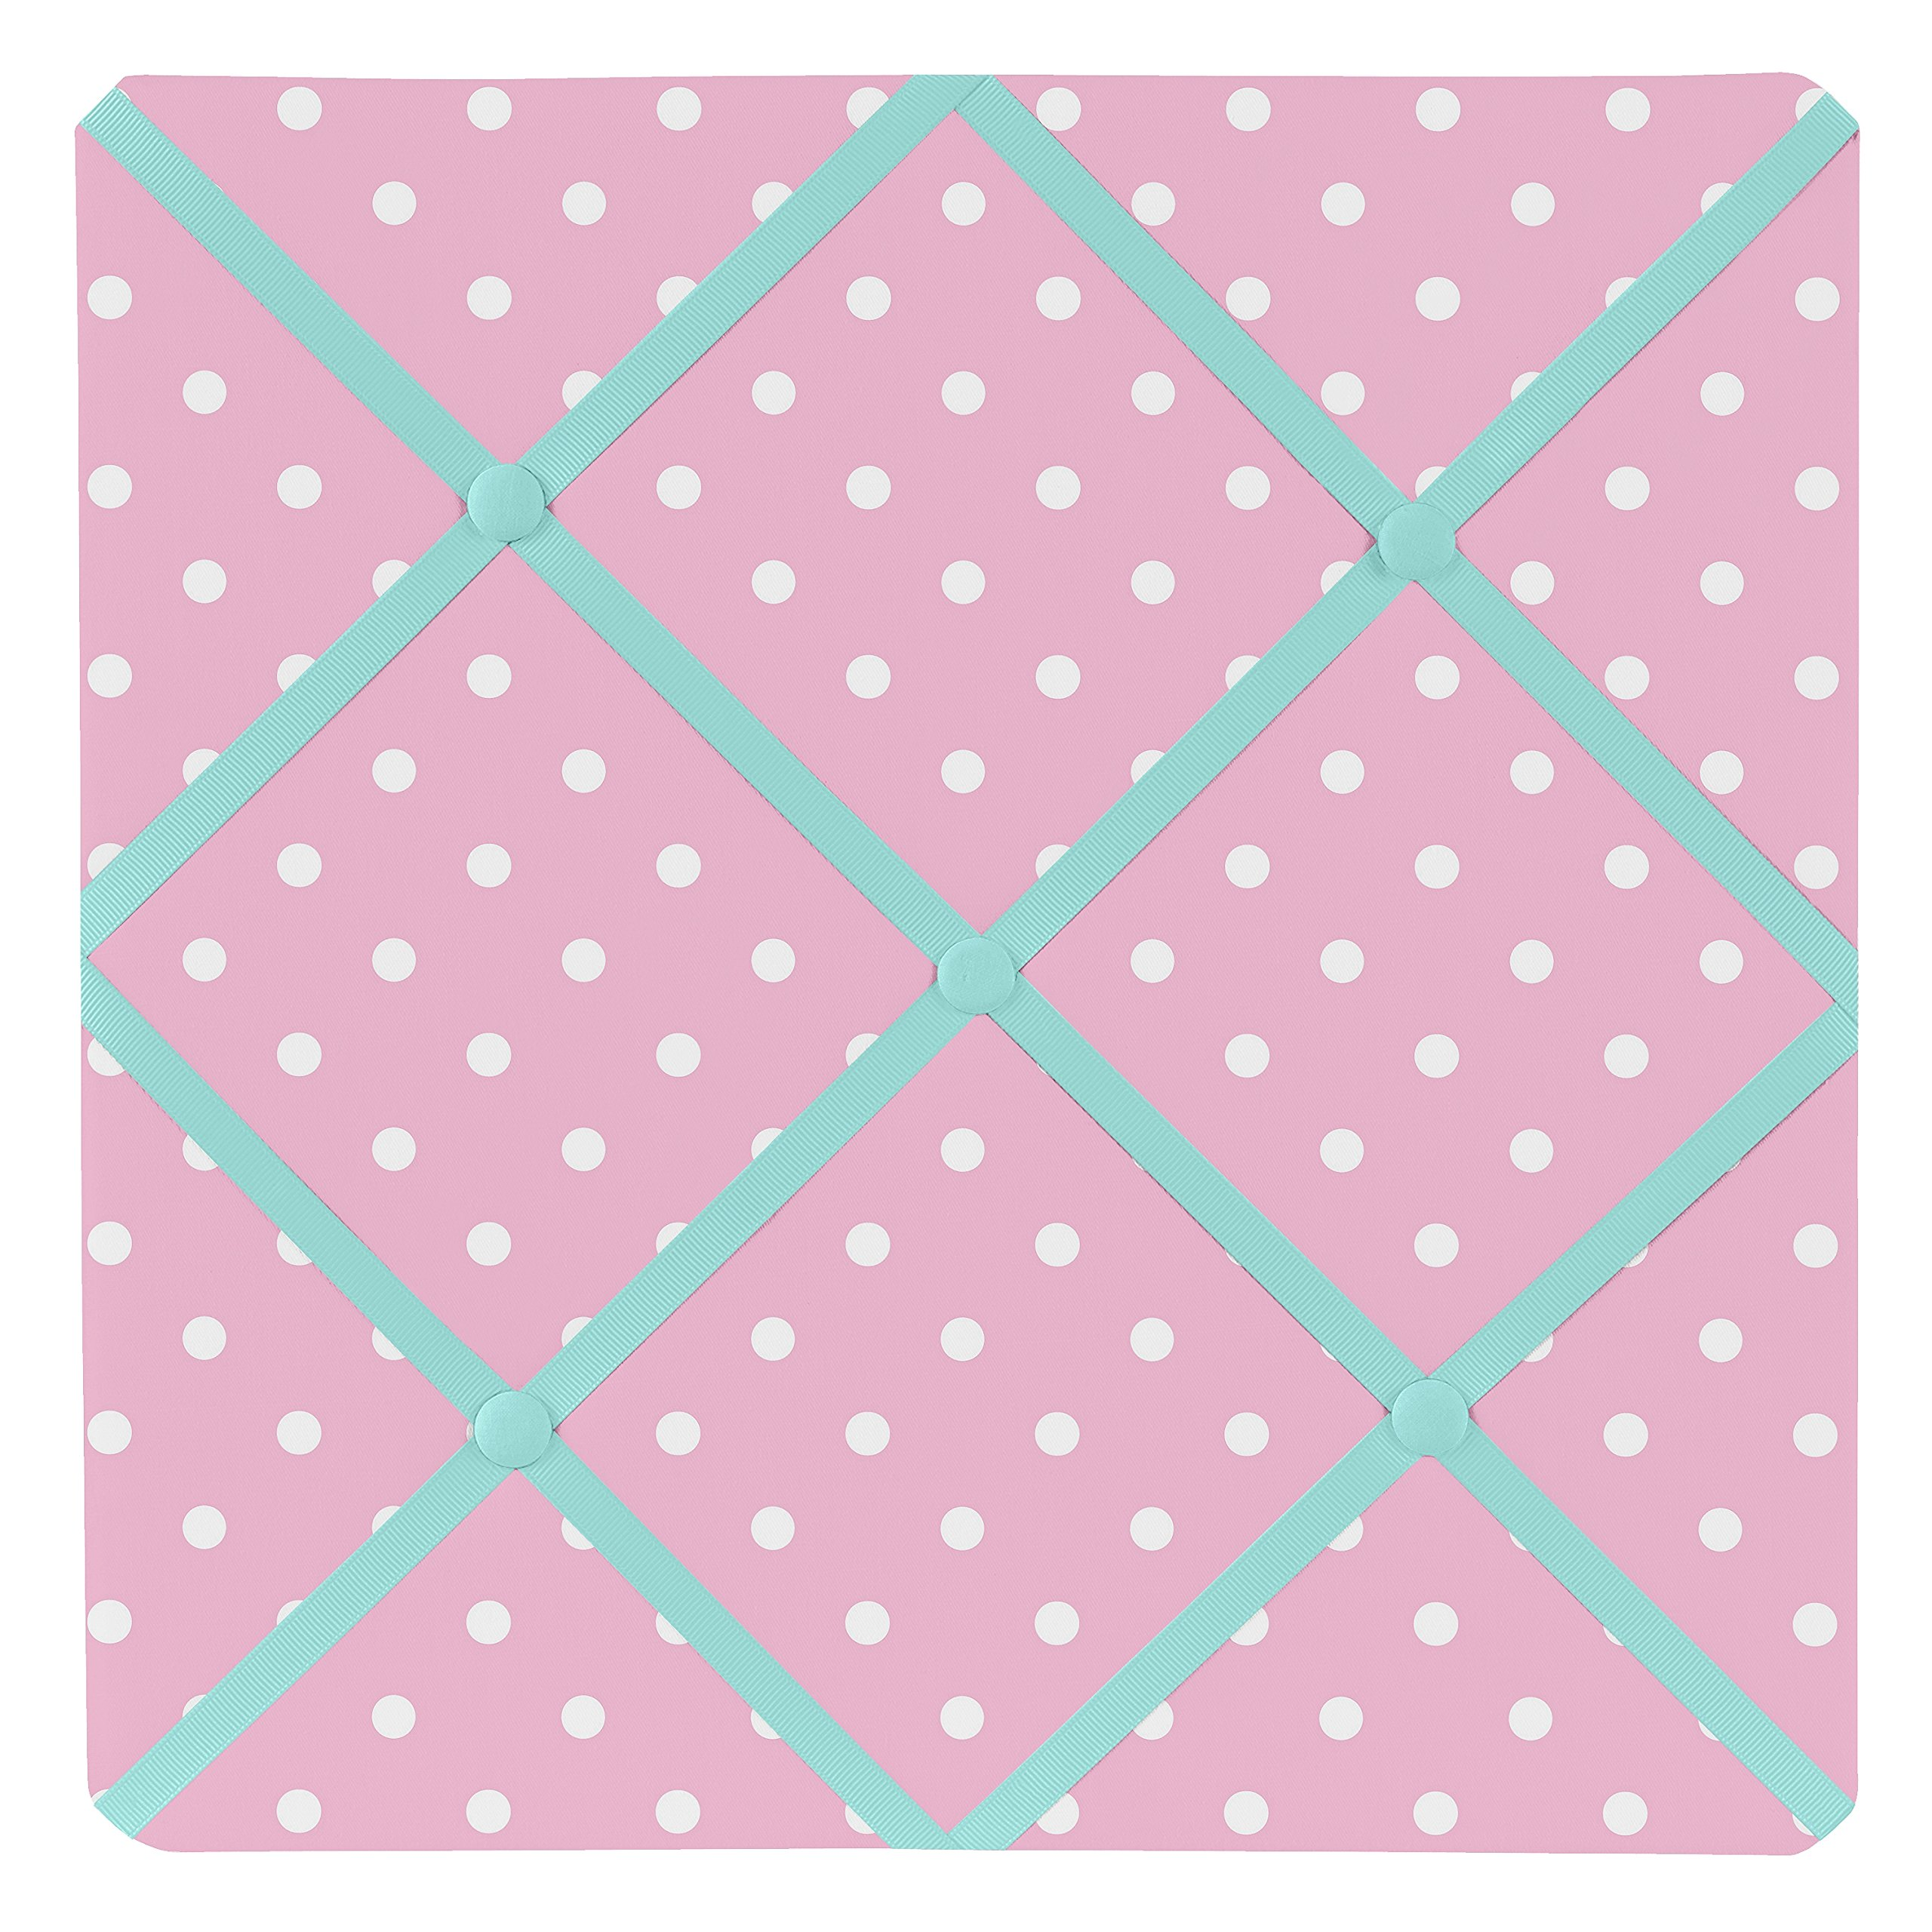 Sweet Jojo Designs Pink Polka Dot and Turquoise Skylar Fabric Memory/Memo Photo Bulletin Board by Sweet Jojo Designs